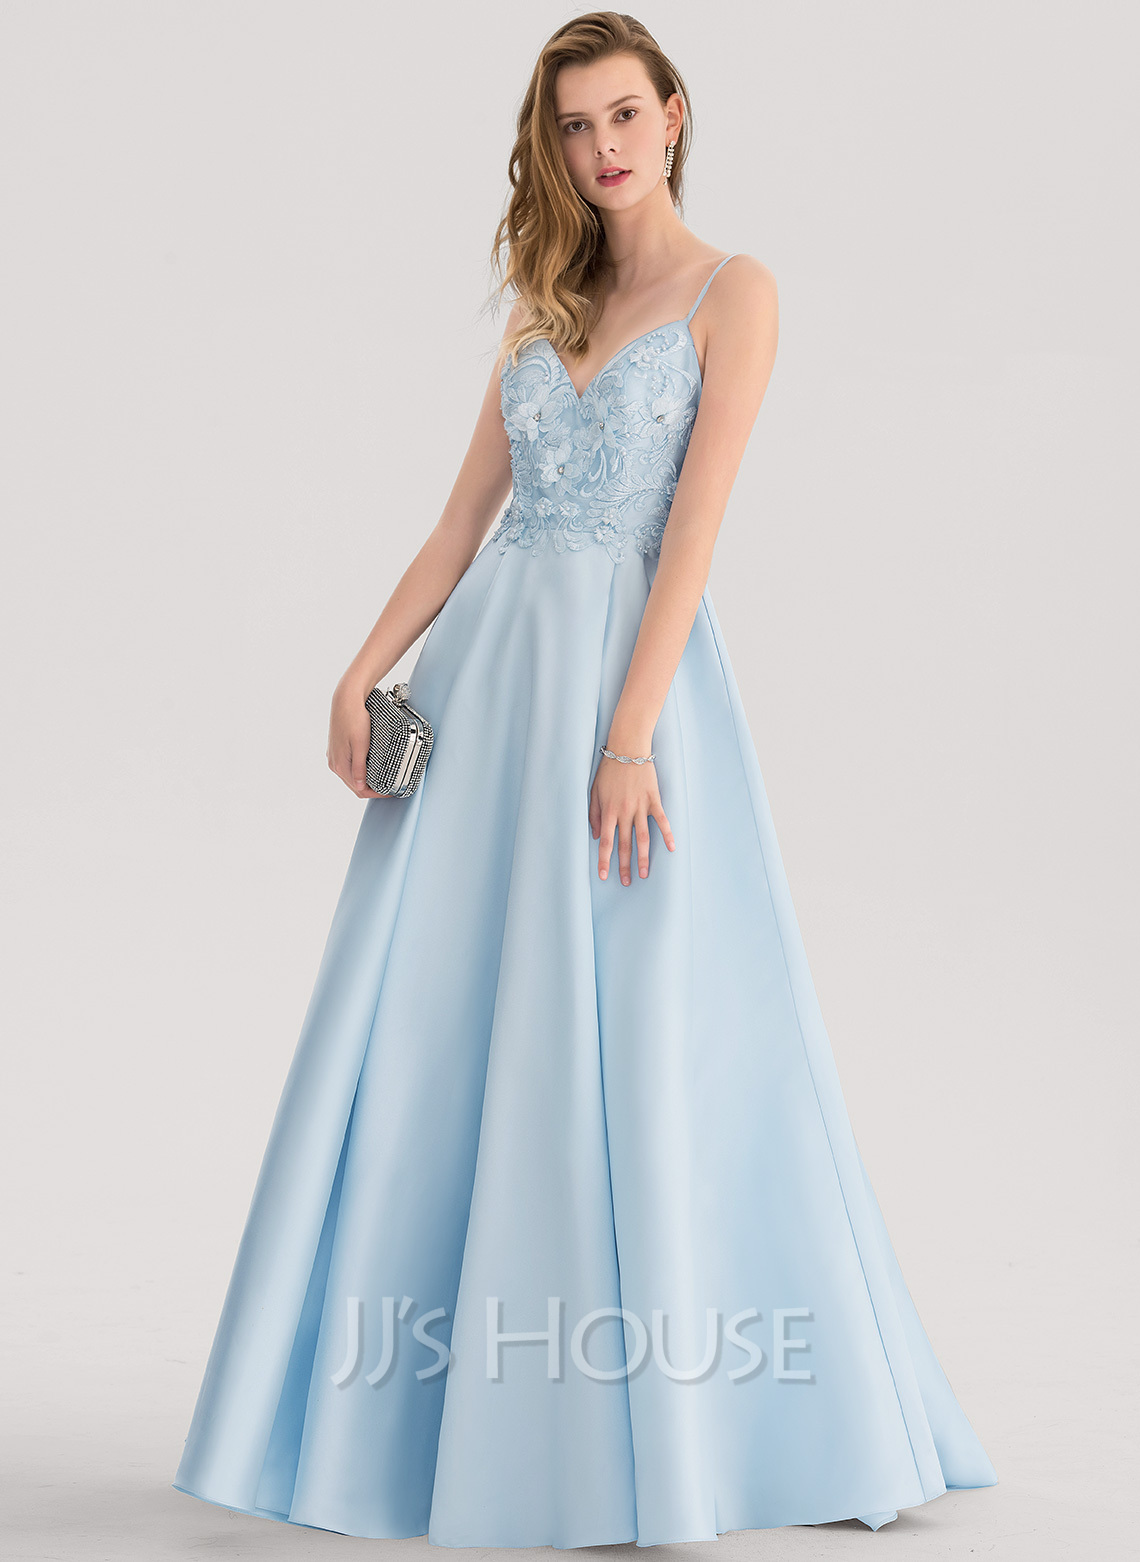 Dress Shops For Prom Dresses In Las Vegas | JJ\'sHouse